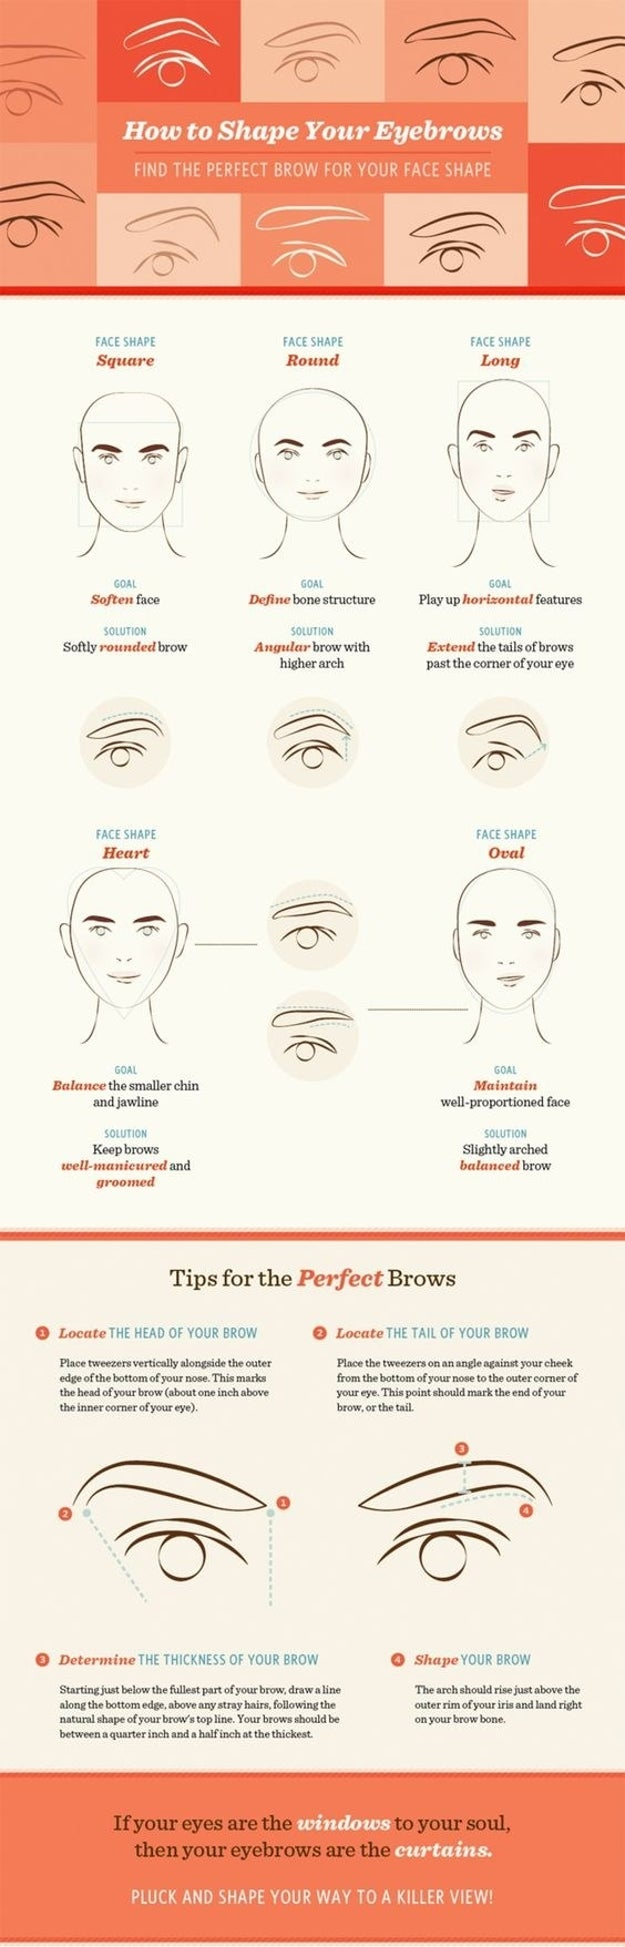 And while you're at it, make sure your eyebrow shape matches your face shape.